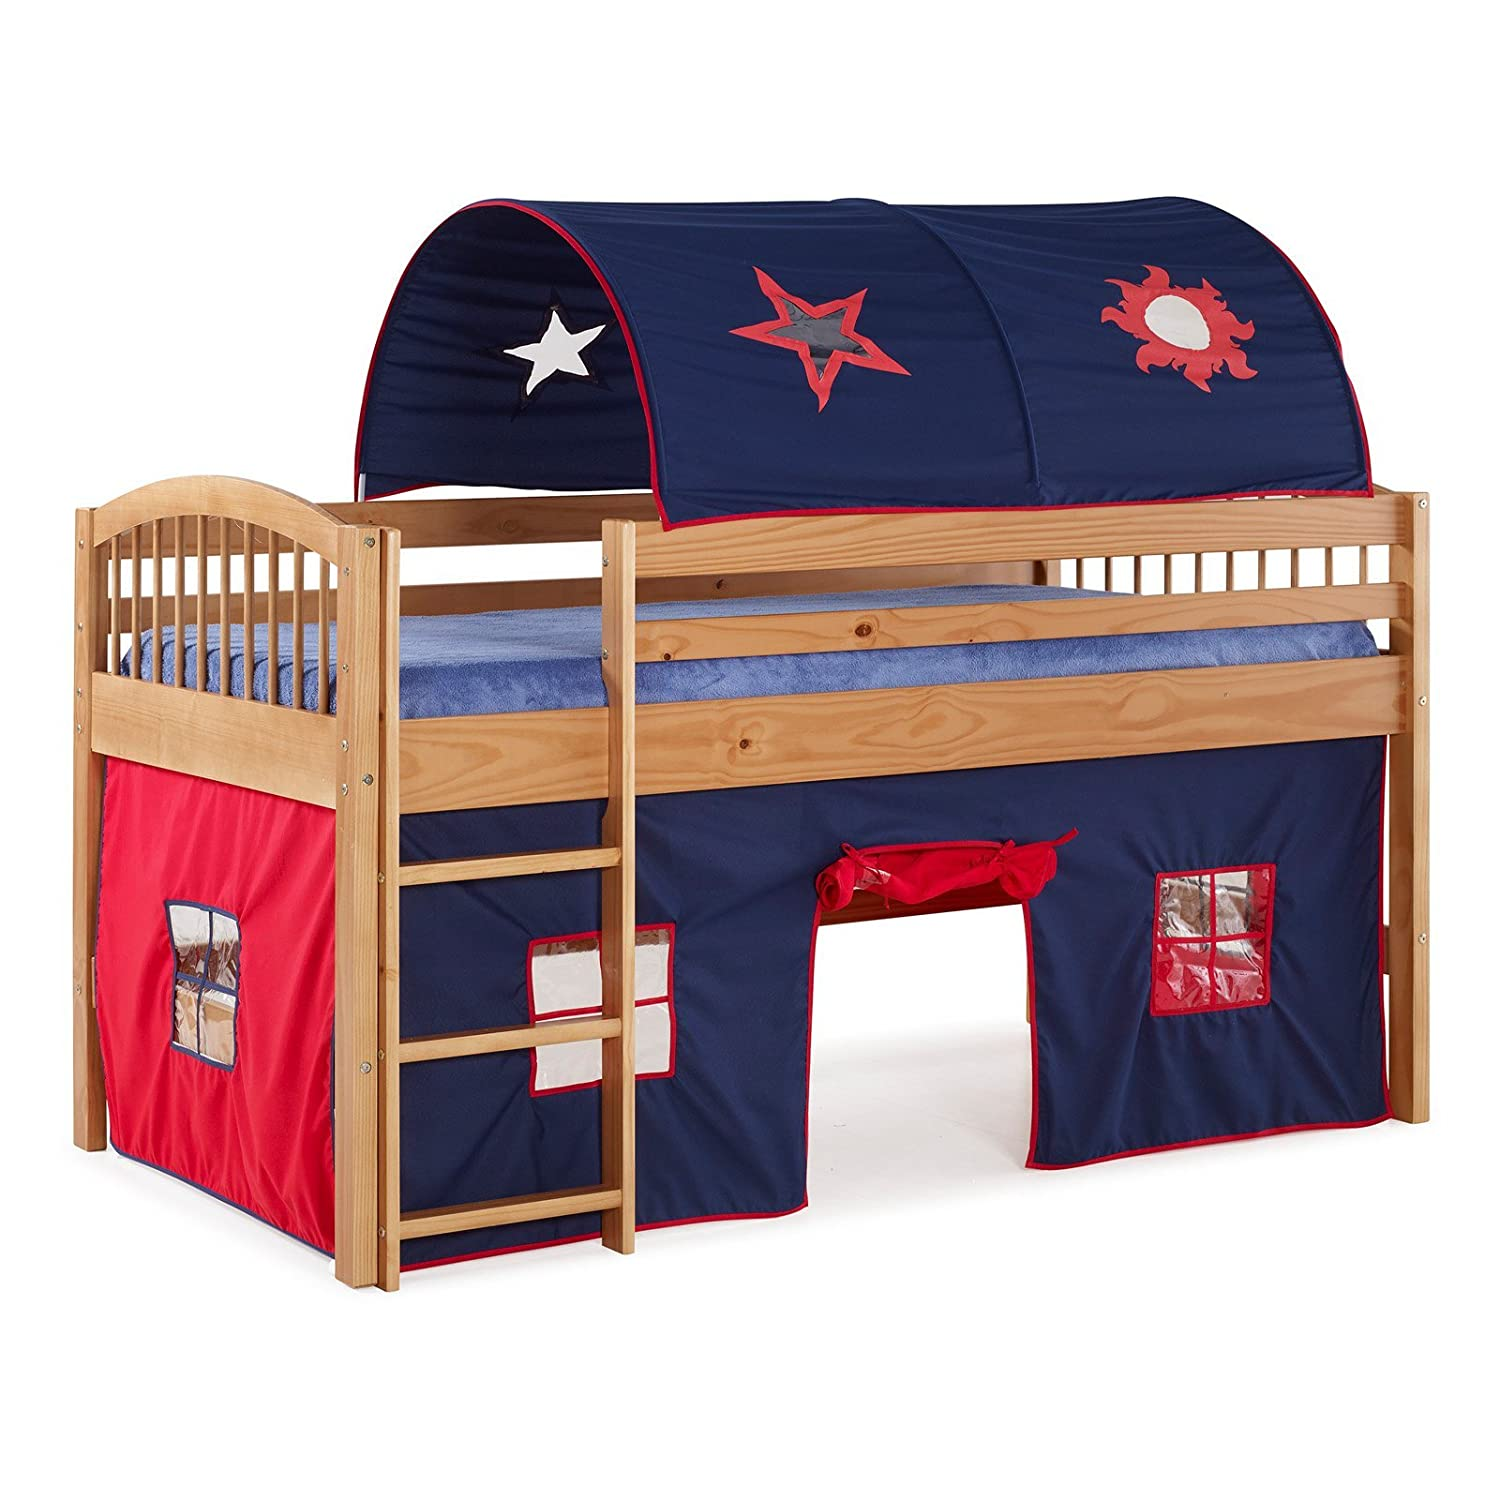 Amazon.com Alaterre Addison Junior Loft Bed with Tent and Playhouse Kitchen u0026 Dining  sc 1 st  Amazon.com & Amazon.com: Alaterre Addison Junior Loft Bed with Tent and ...